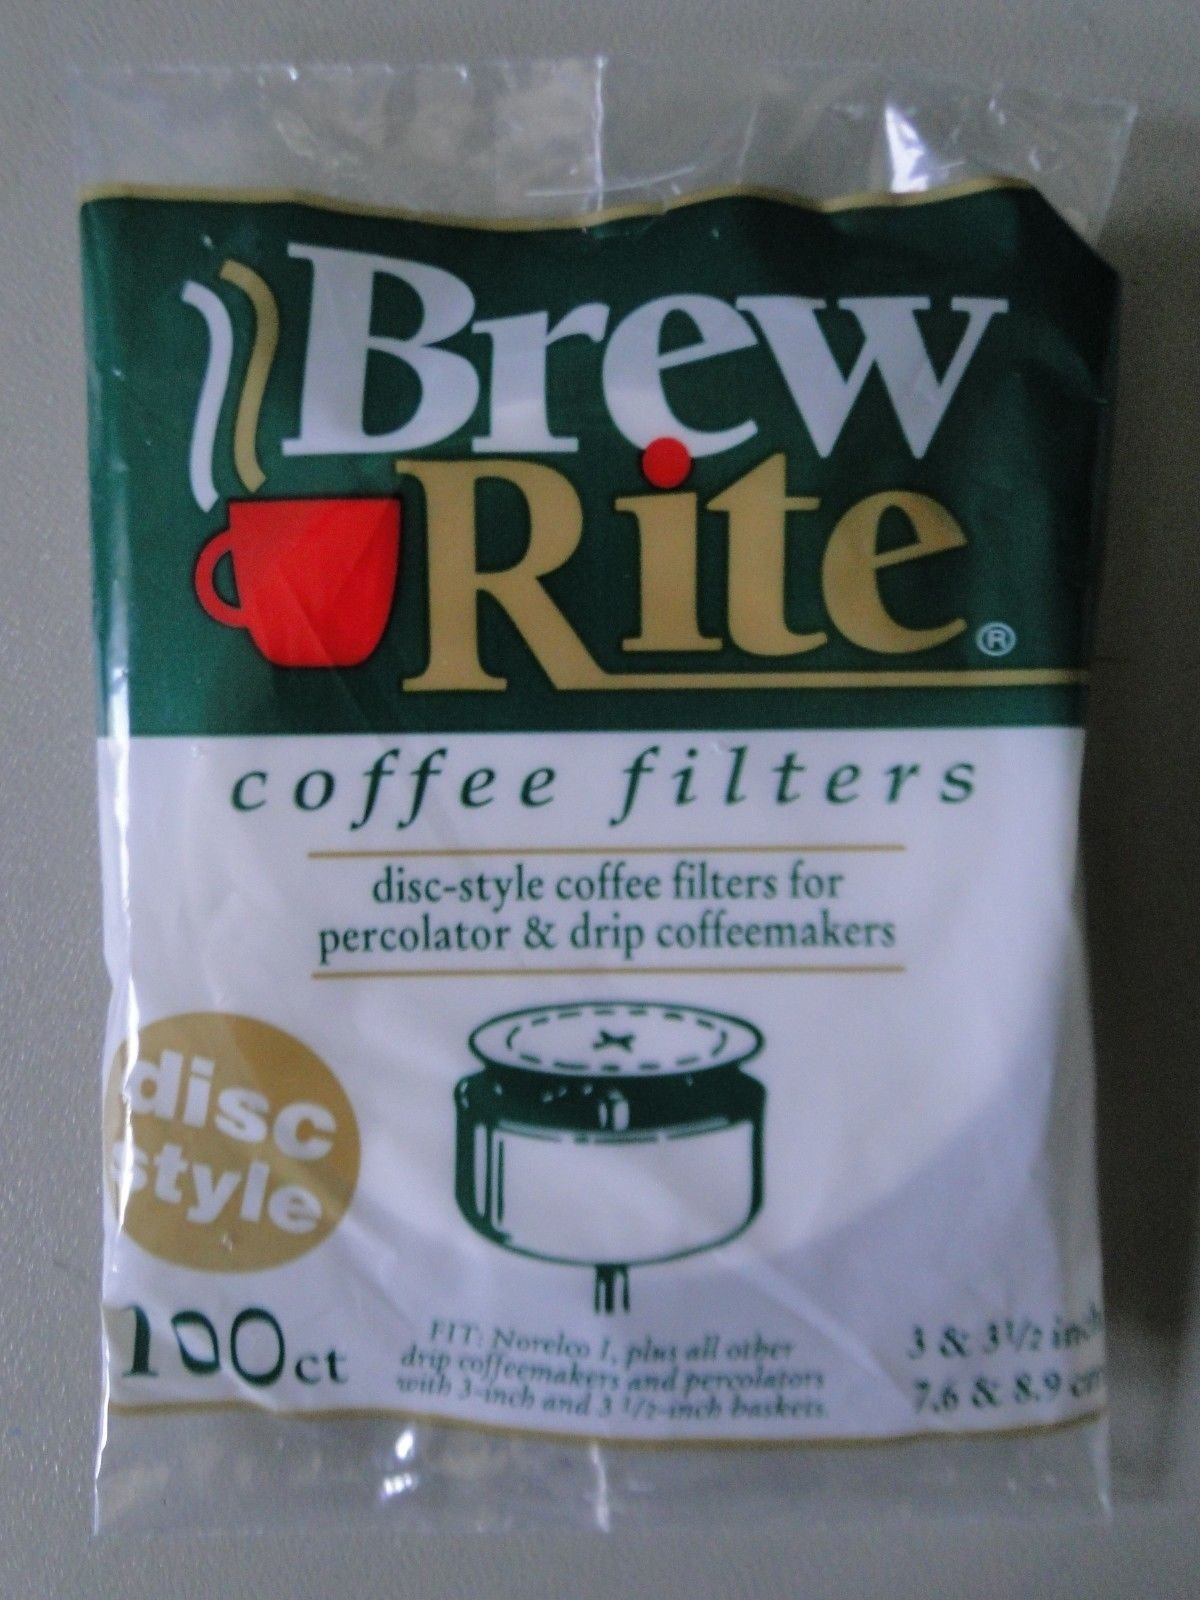 BREW RITE 100ct coffee filters DISC STYLE percolator - made in USA (3)